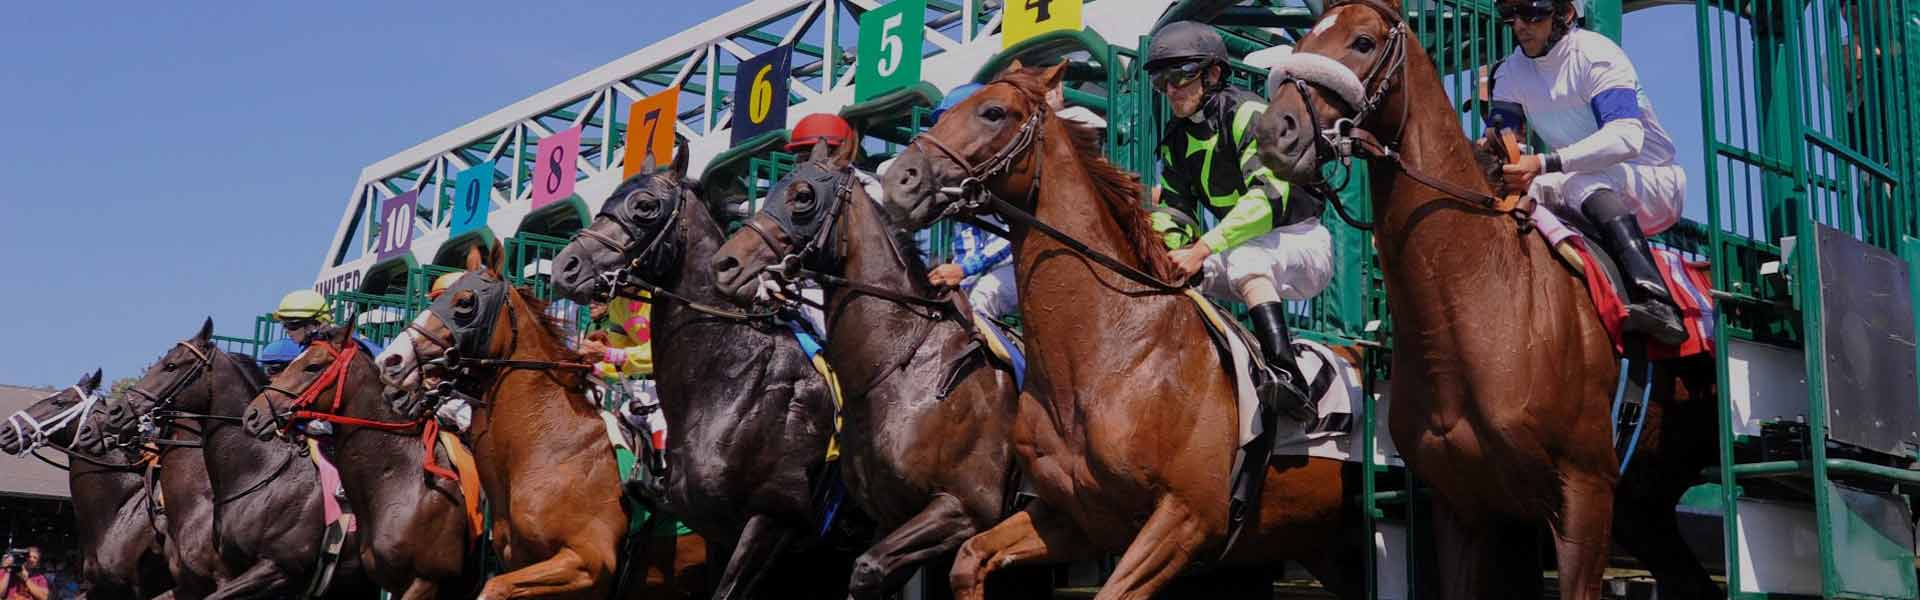 Greyhound racing betting online sports betting and casino online